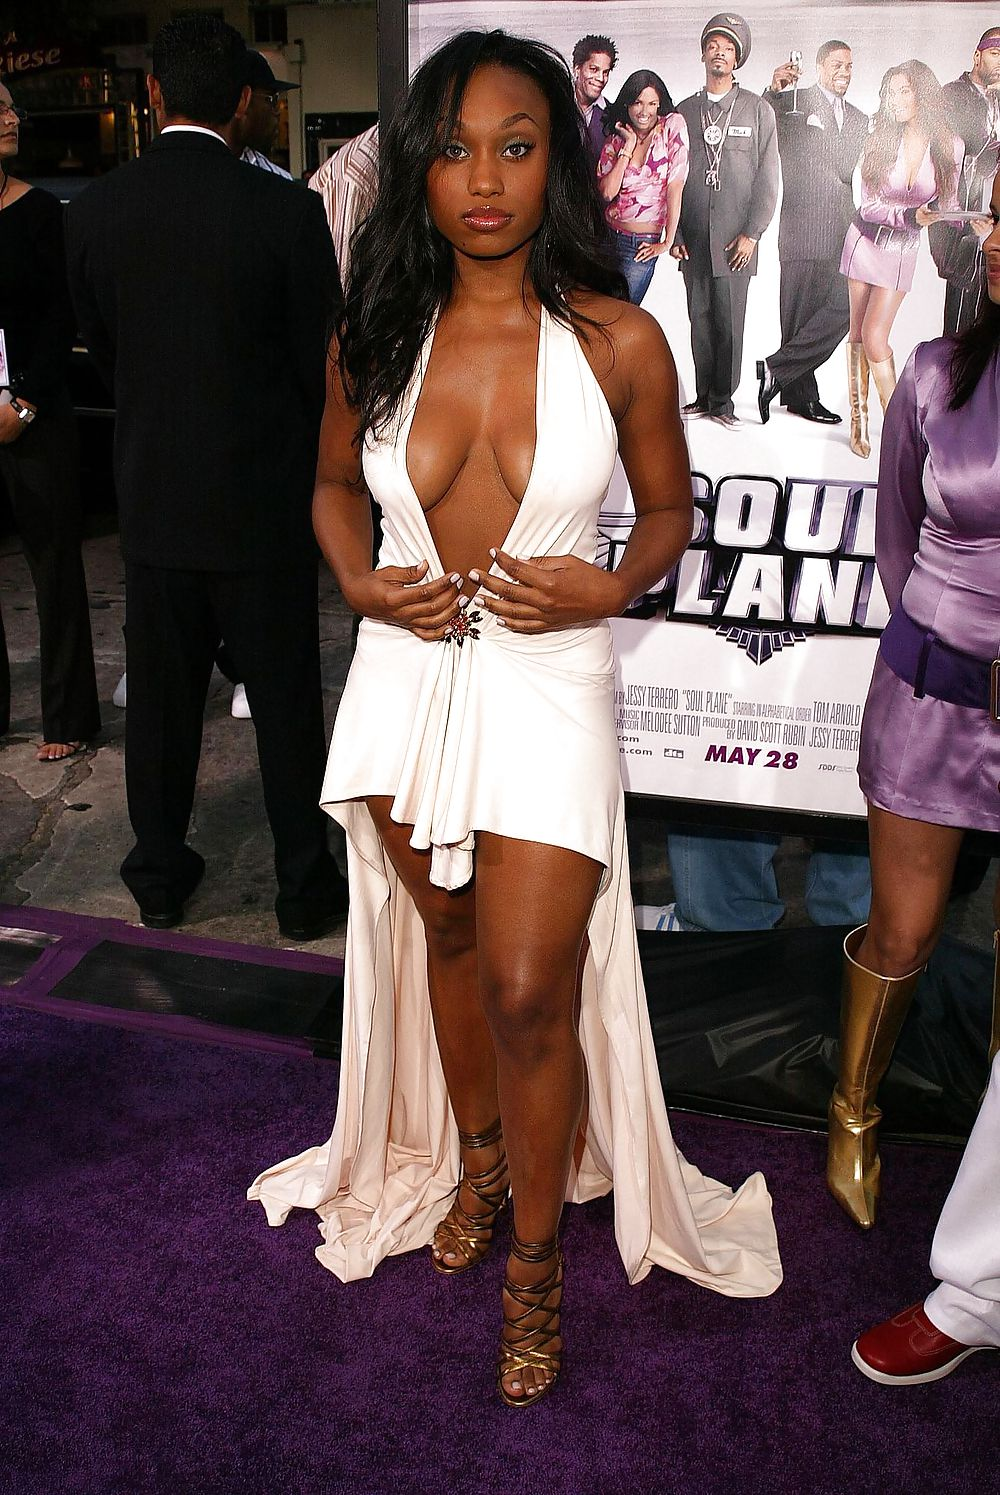 Angell conwell tits